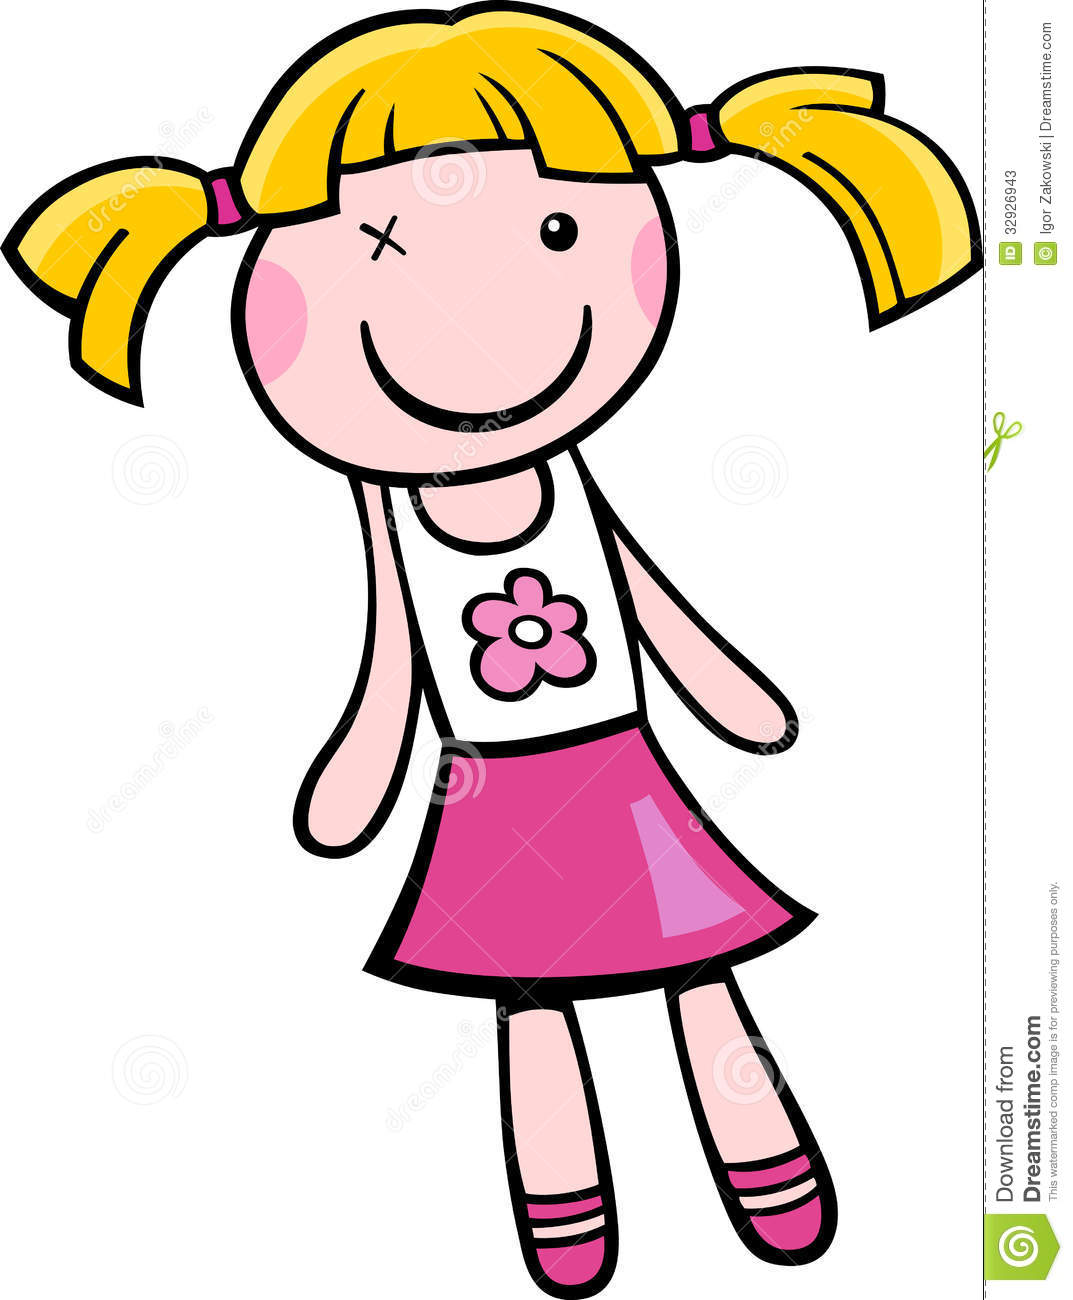 Doll black and white. Free clipart of dolls